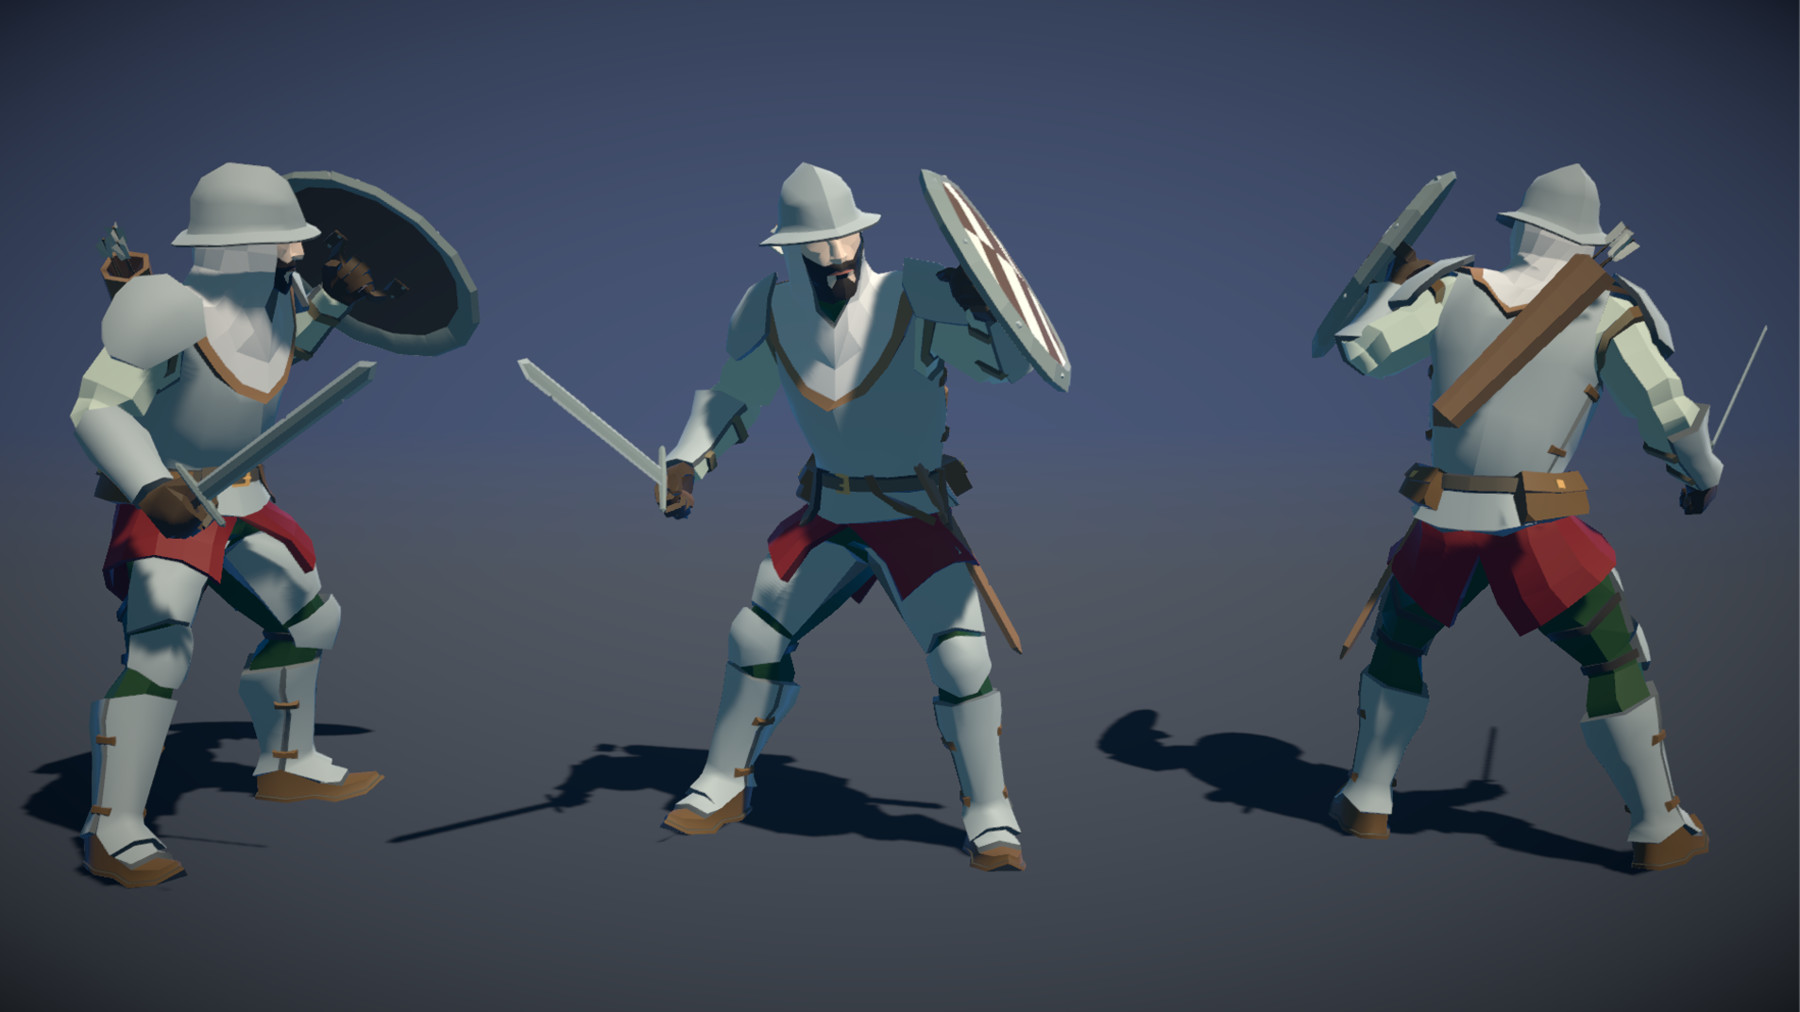 Pt medieval lowpoly characters soldier 03